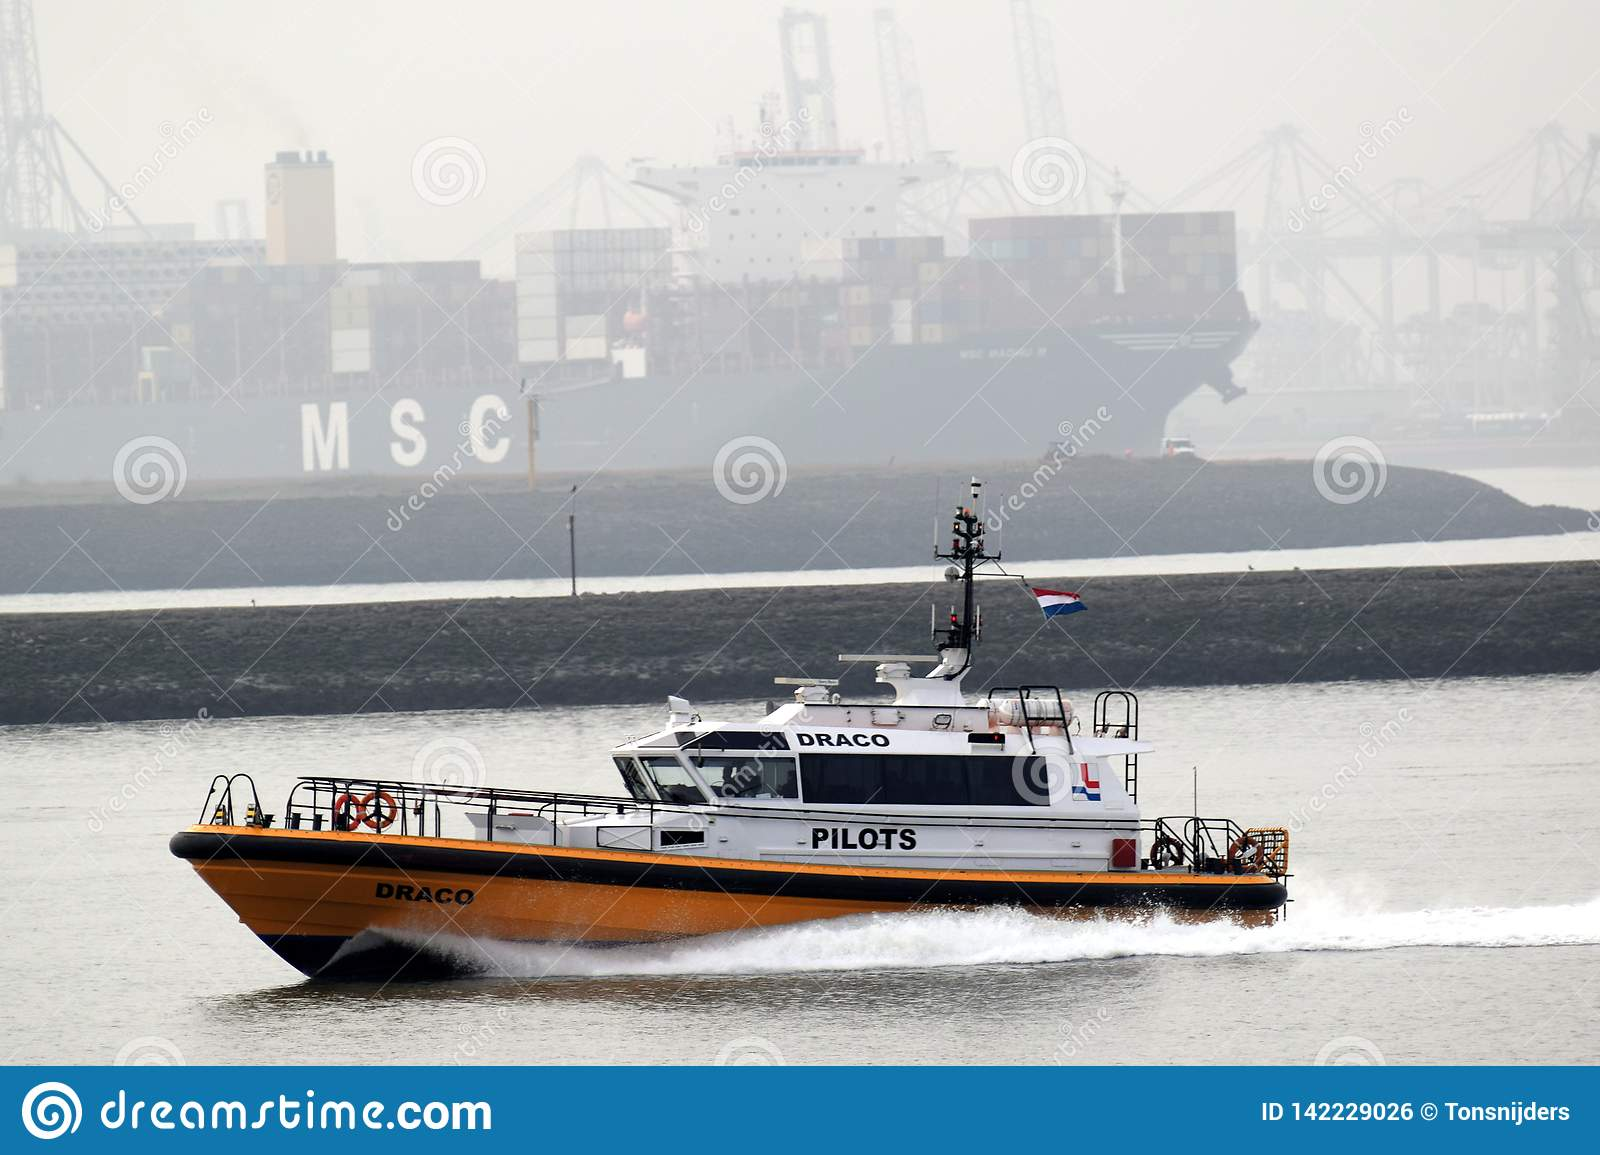 Pilot ships for guiding incoming and outgoing ships